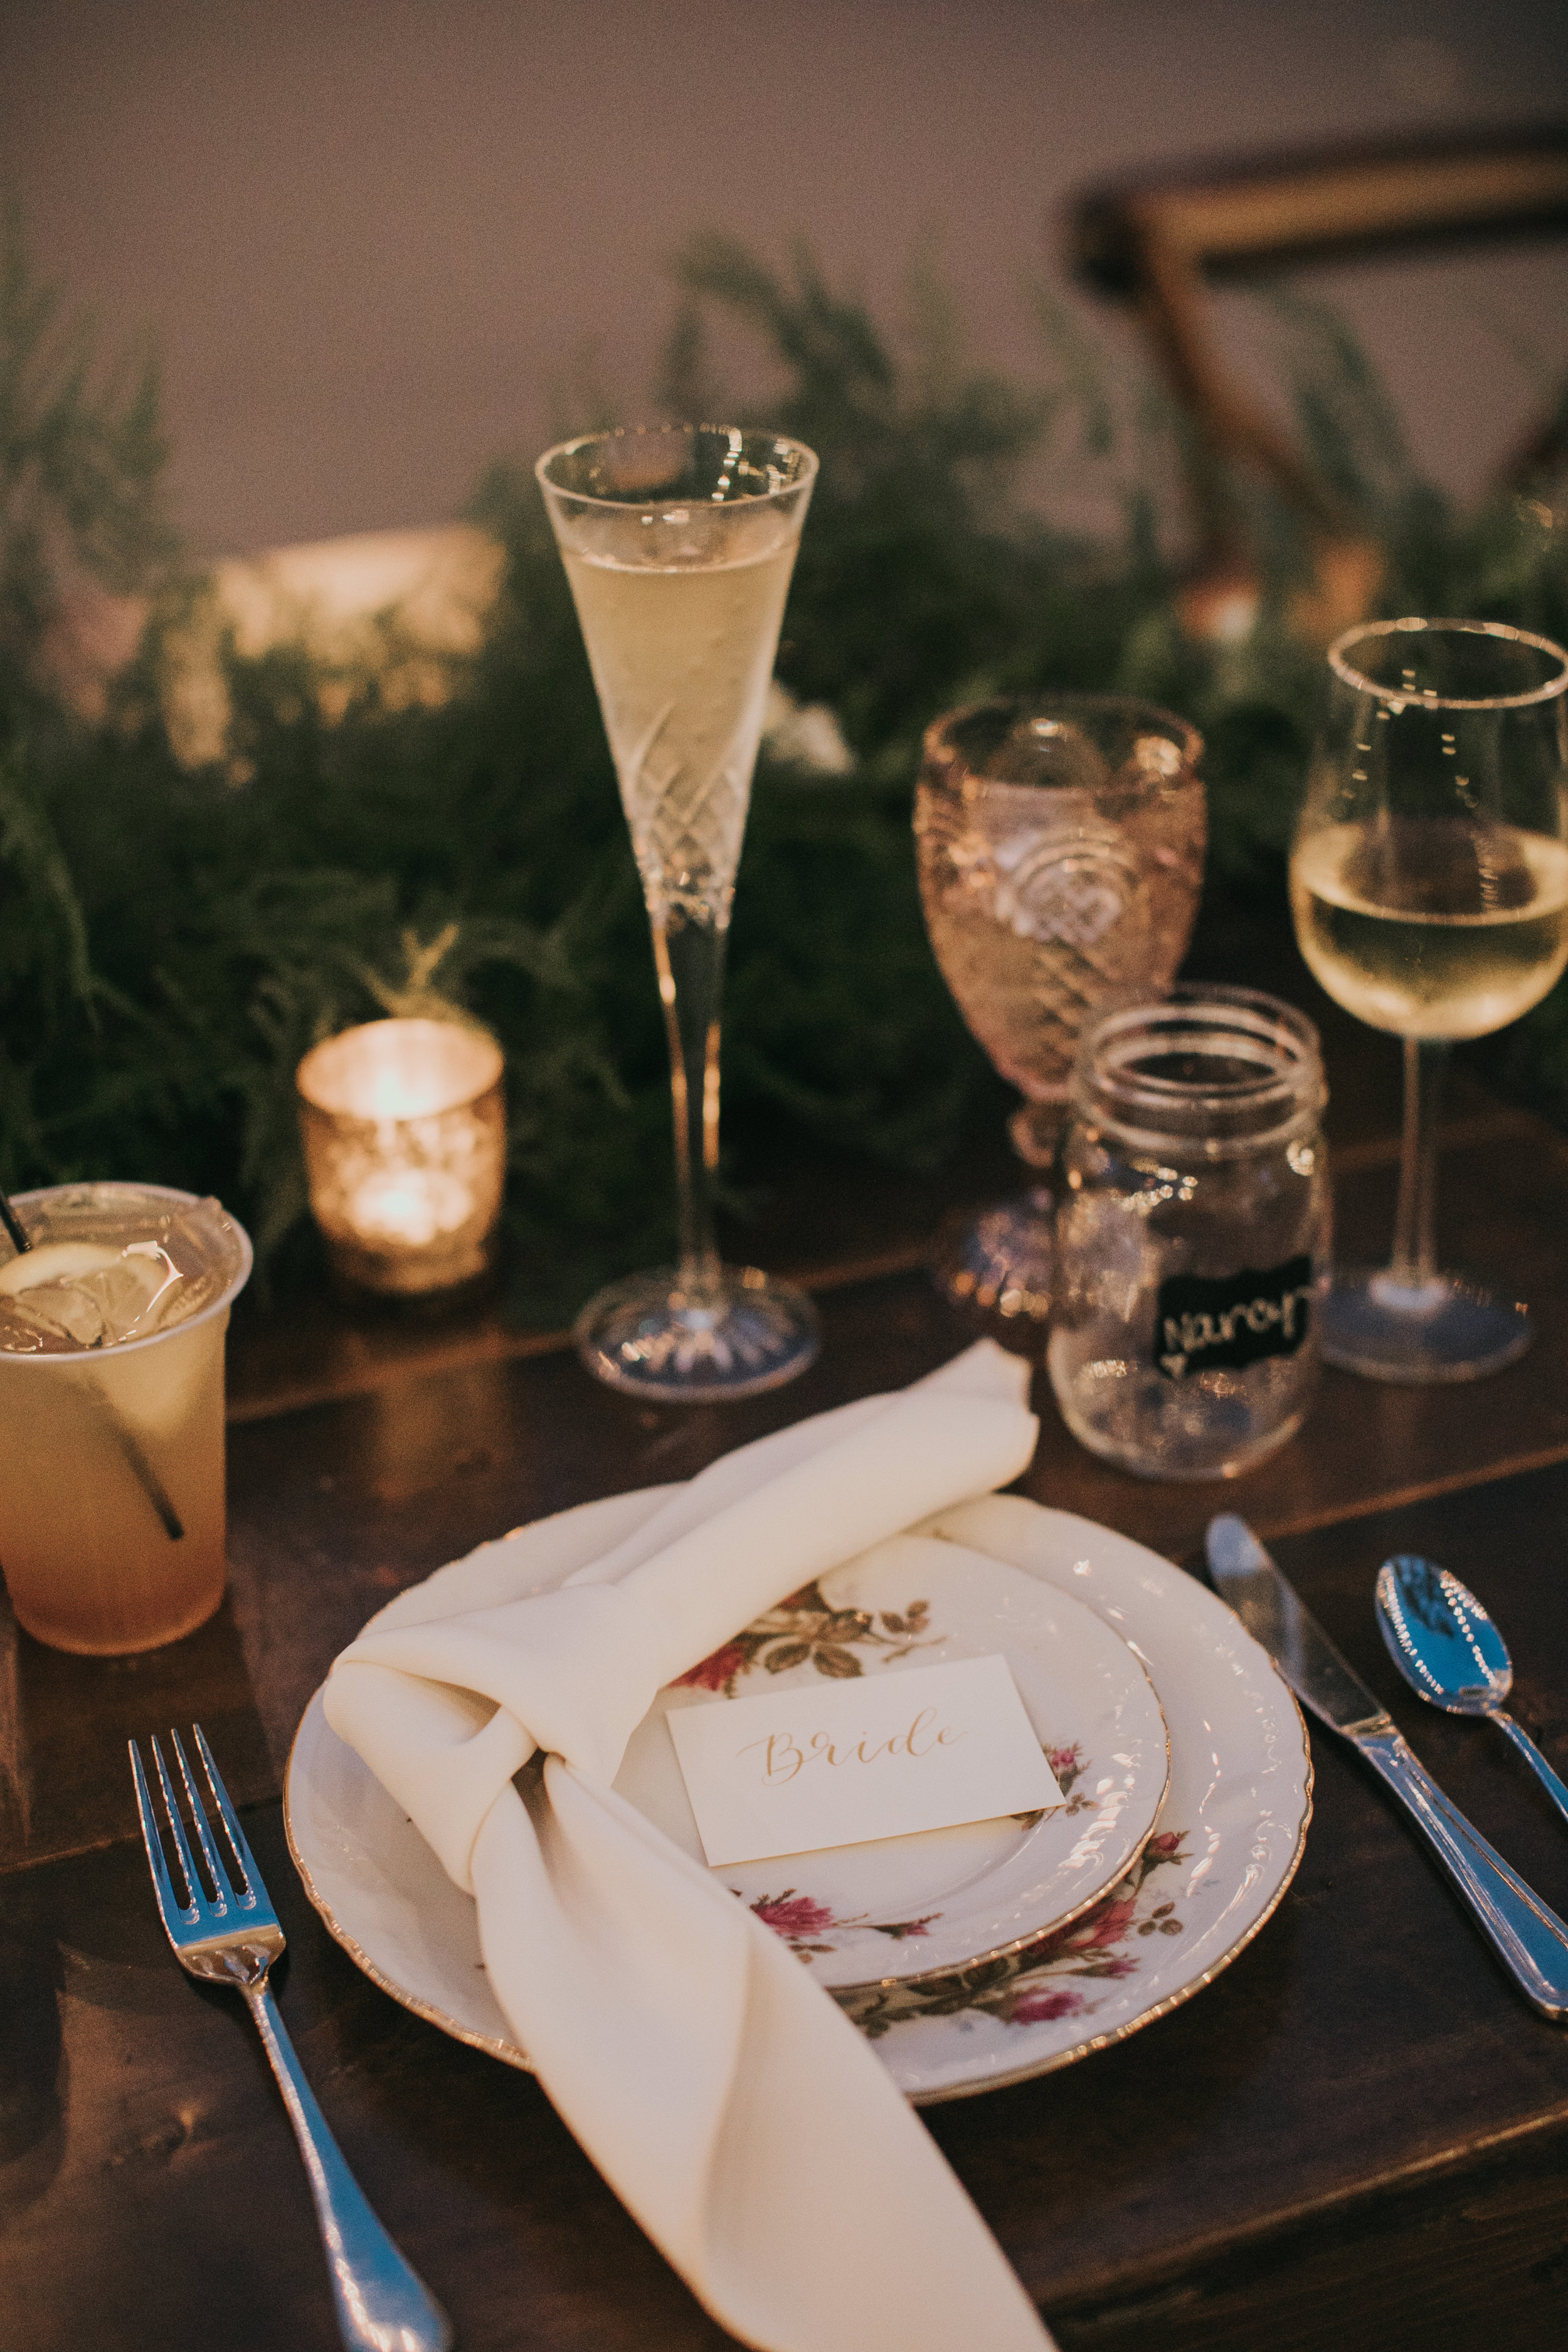 Specialty dishware for the bride and groom